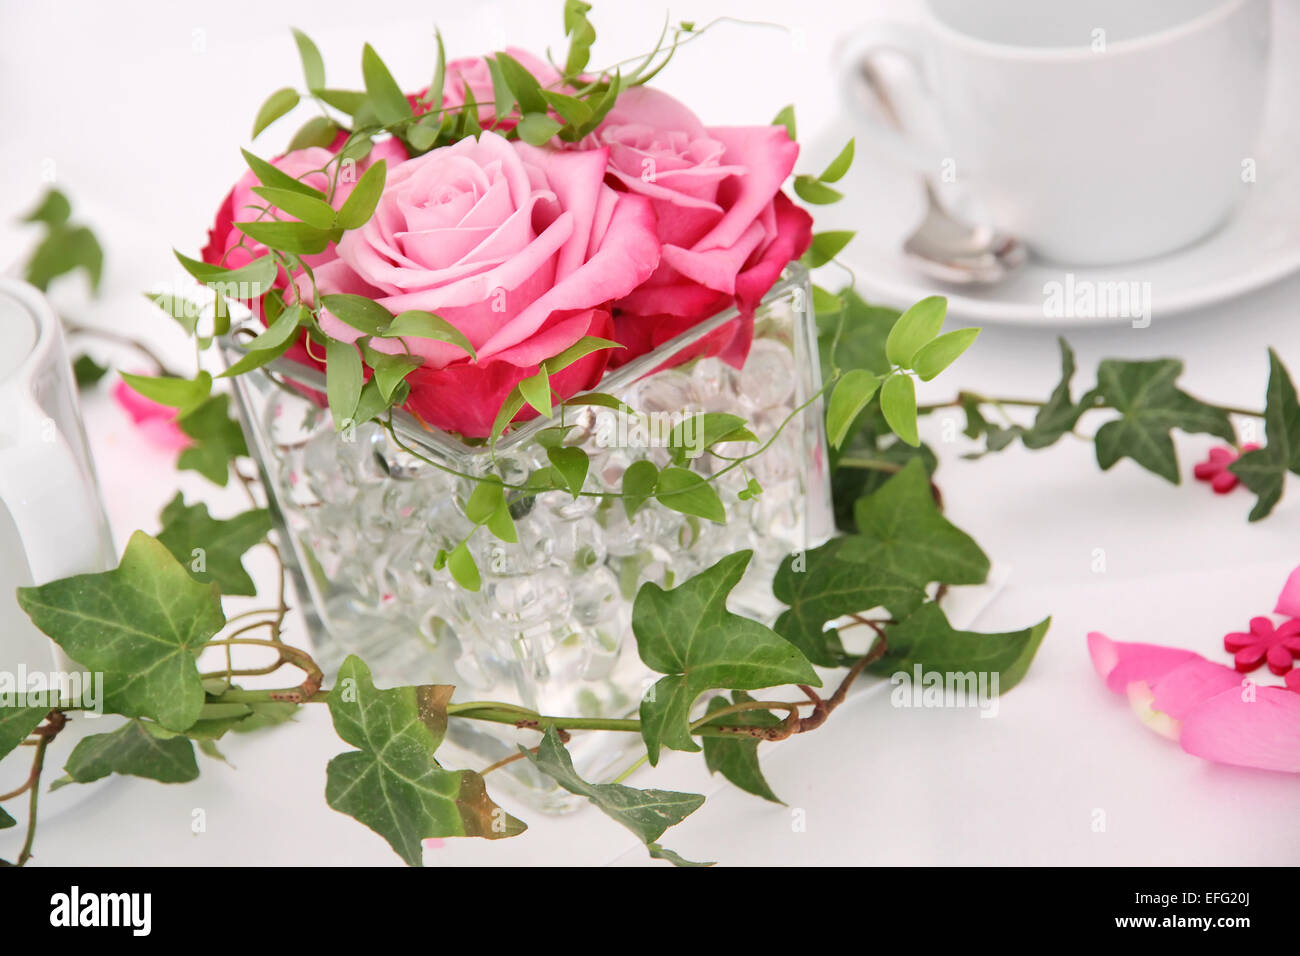 Solemnly laid table for a wedding with white and pink - Stock Image